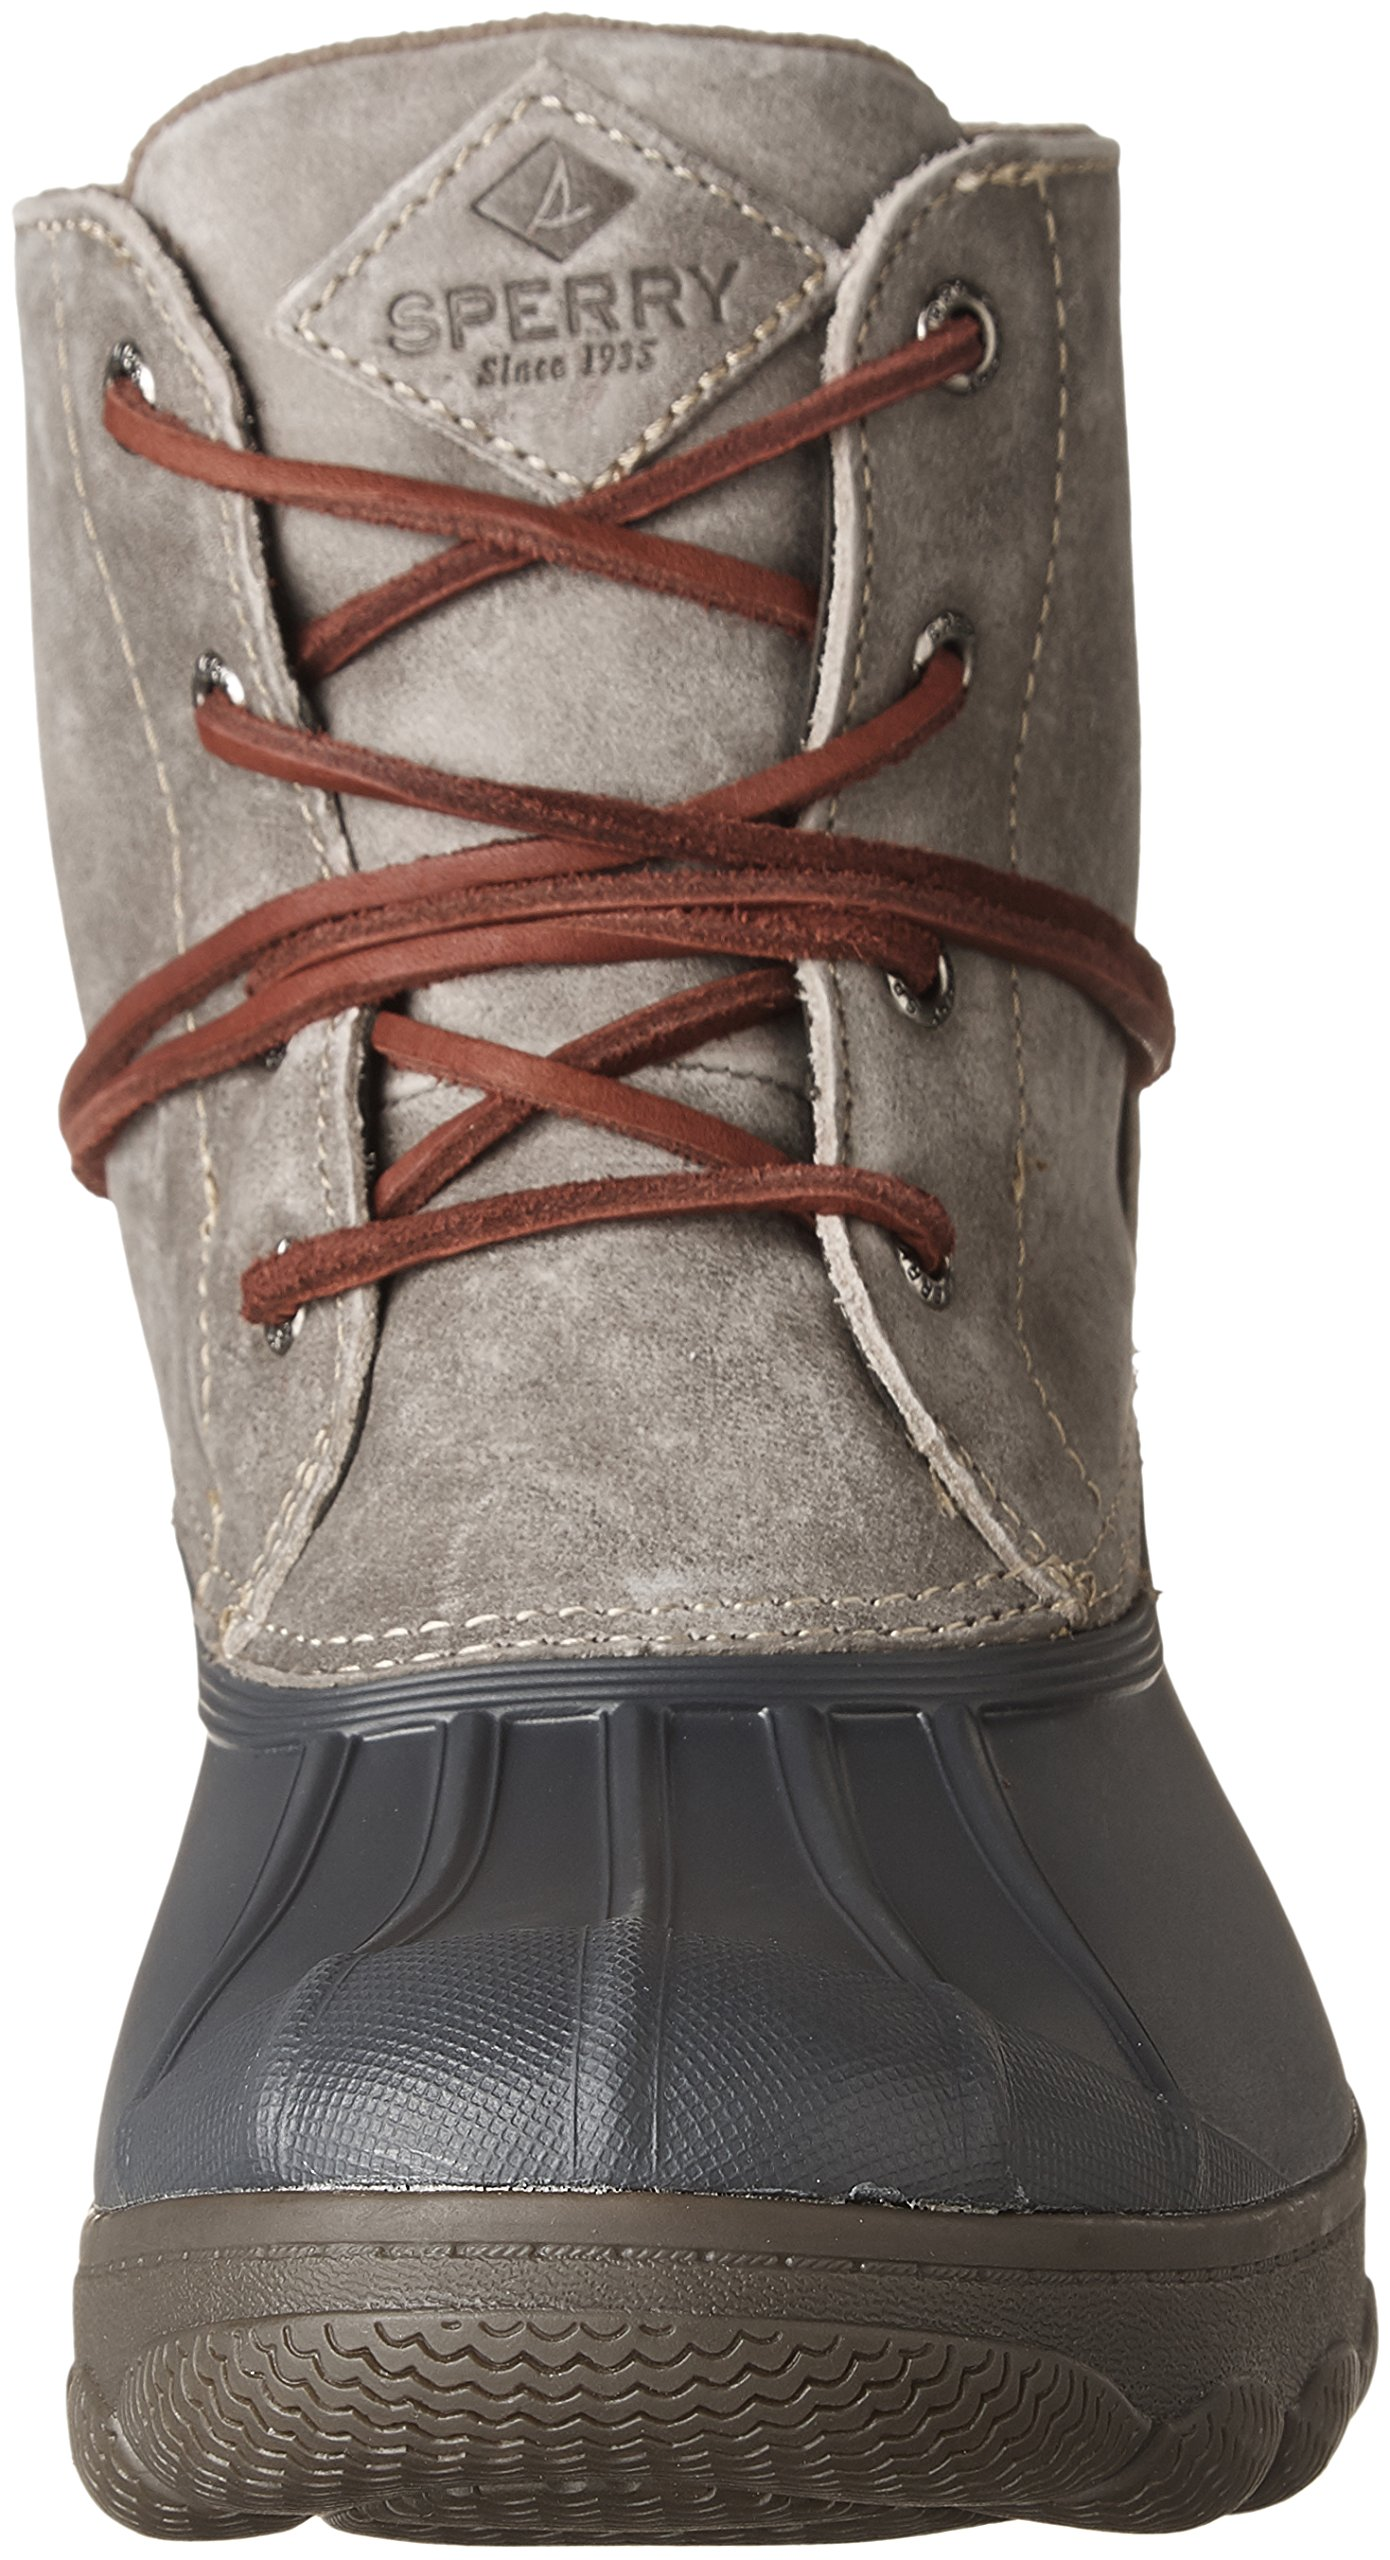 Sperry Top-Sider Women's Saltwater Wedge Tide Rain Boot, Grey, 8 Medium US by Sperry Top-Sider (Image #4)